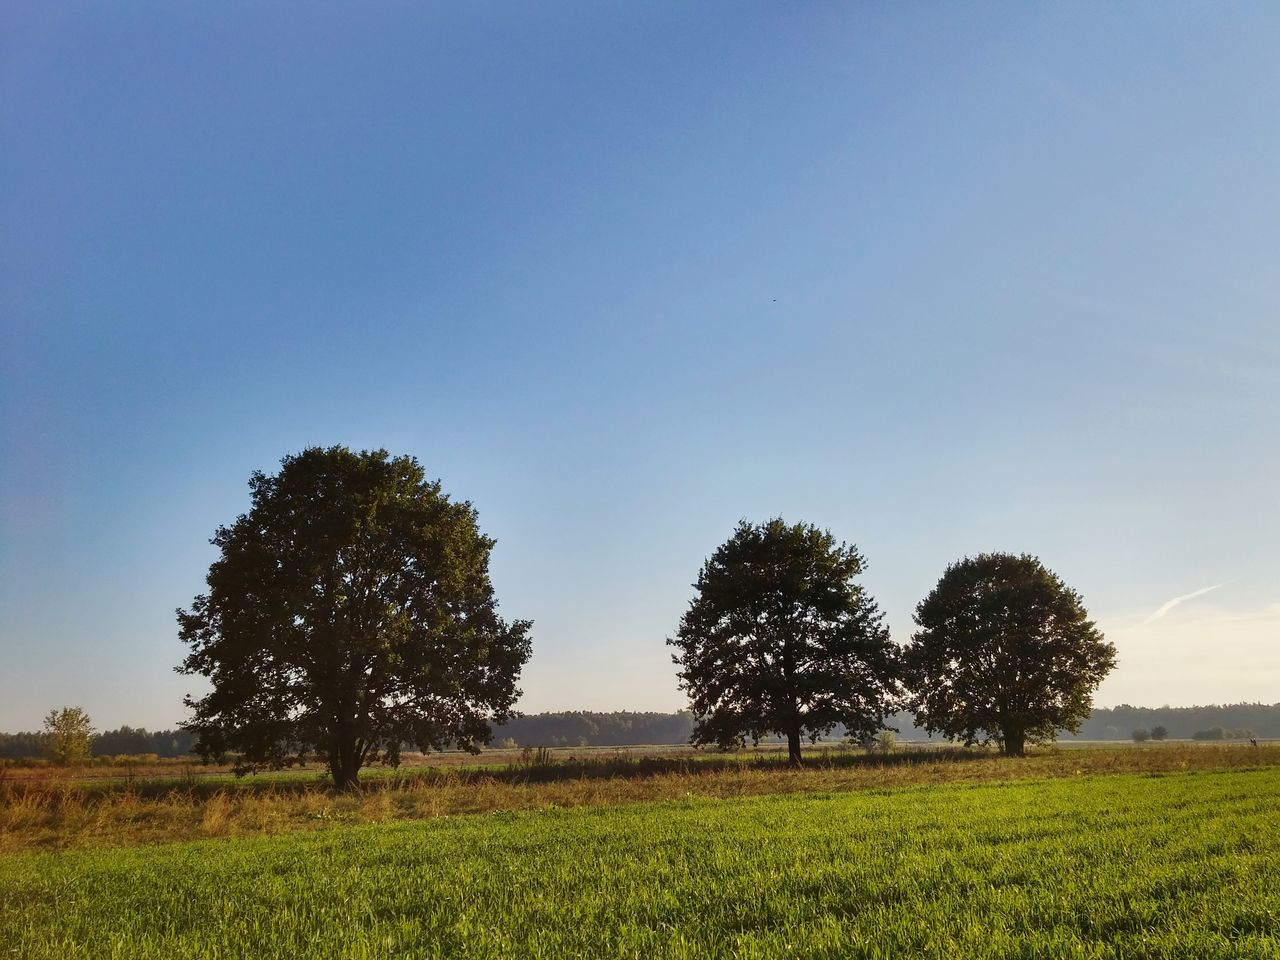 Trees And Grass On Field Against Blue Sky